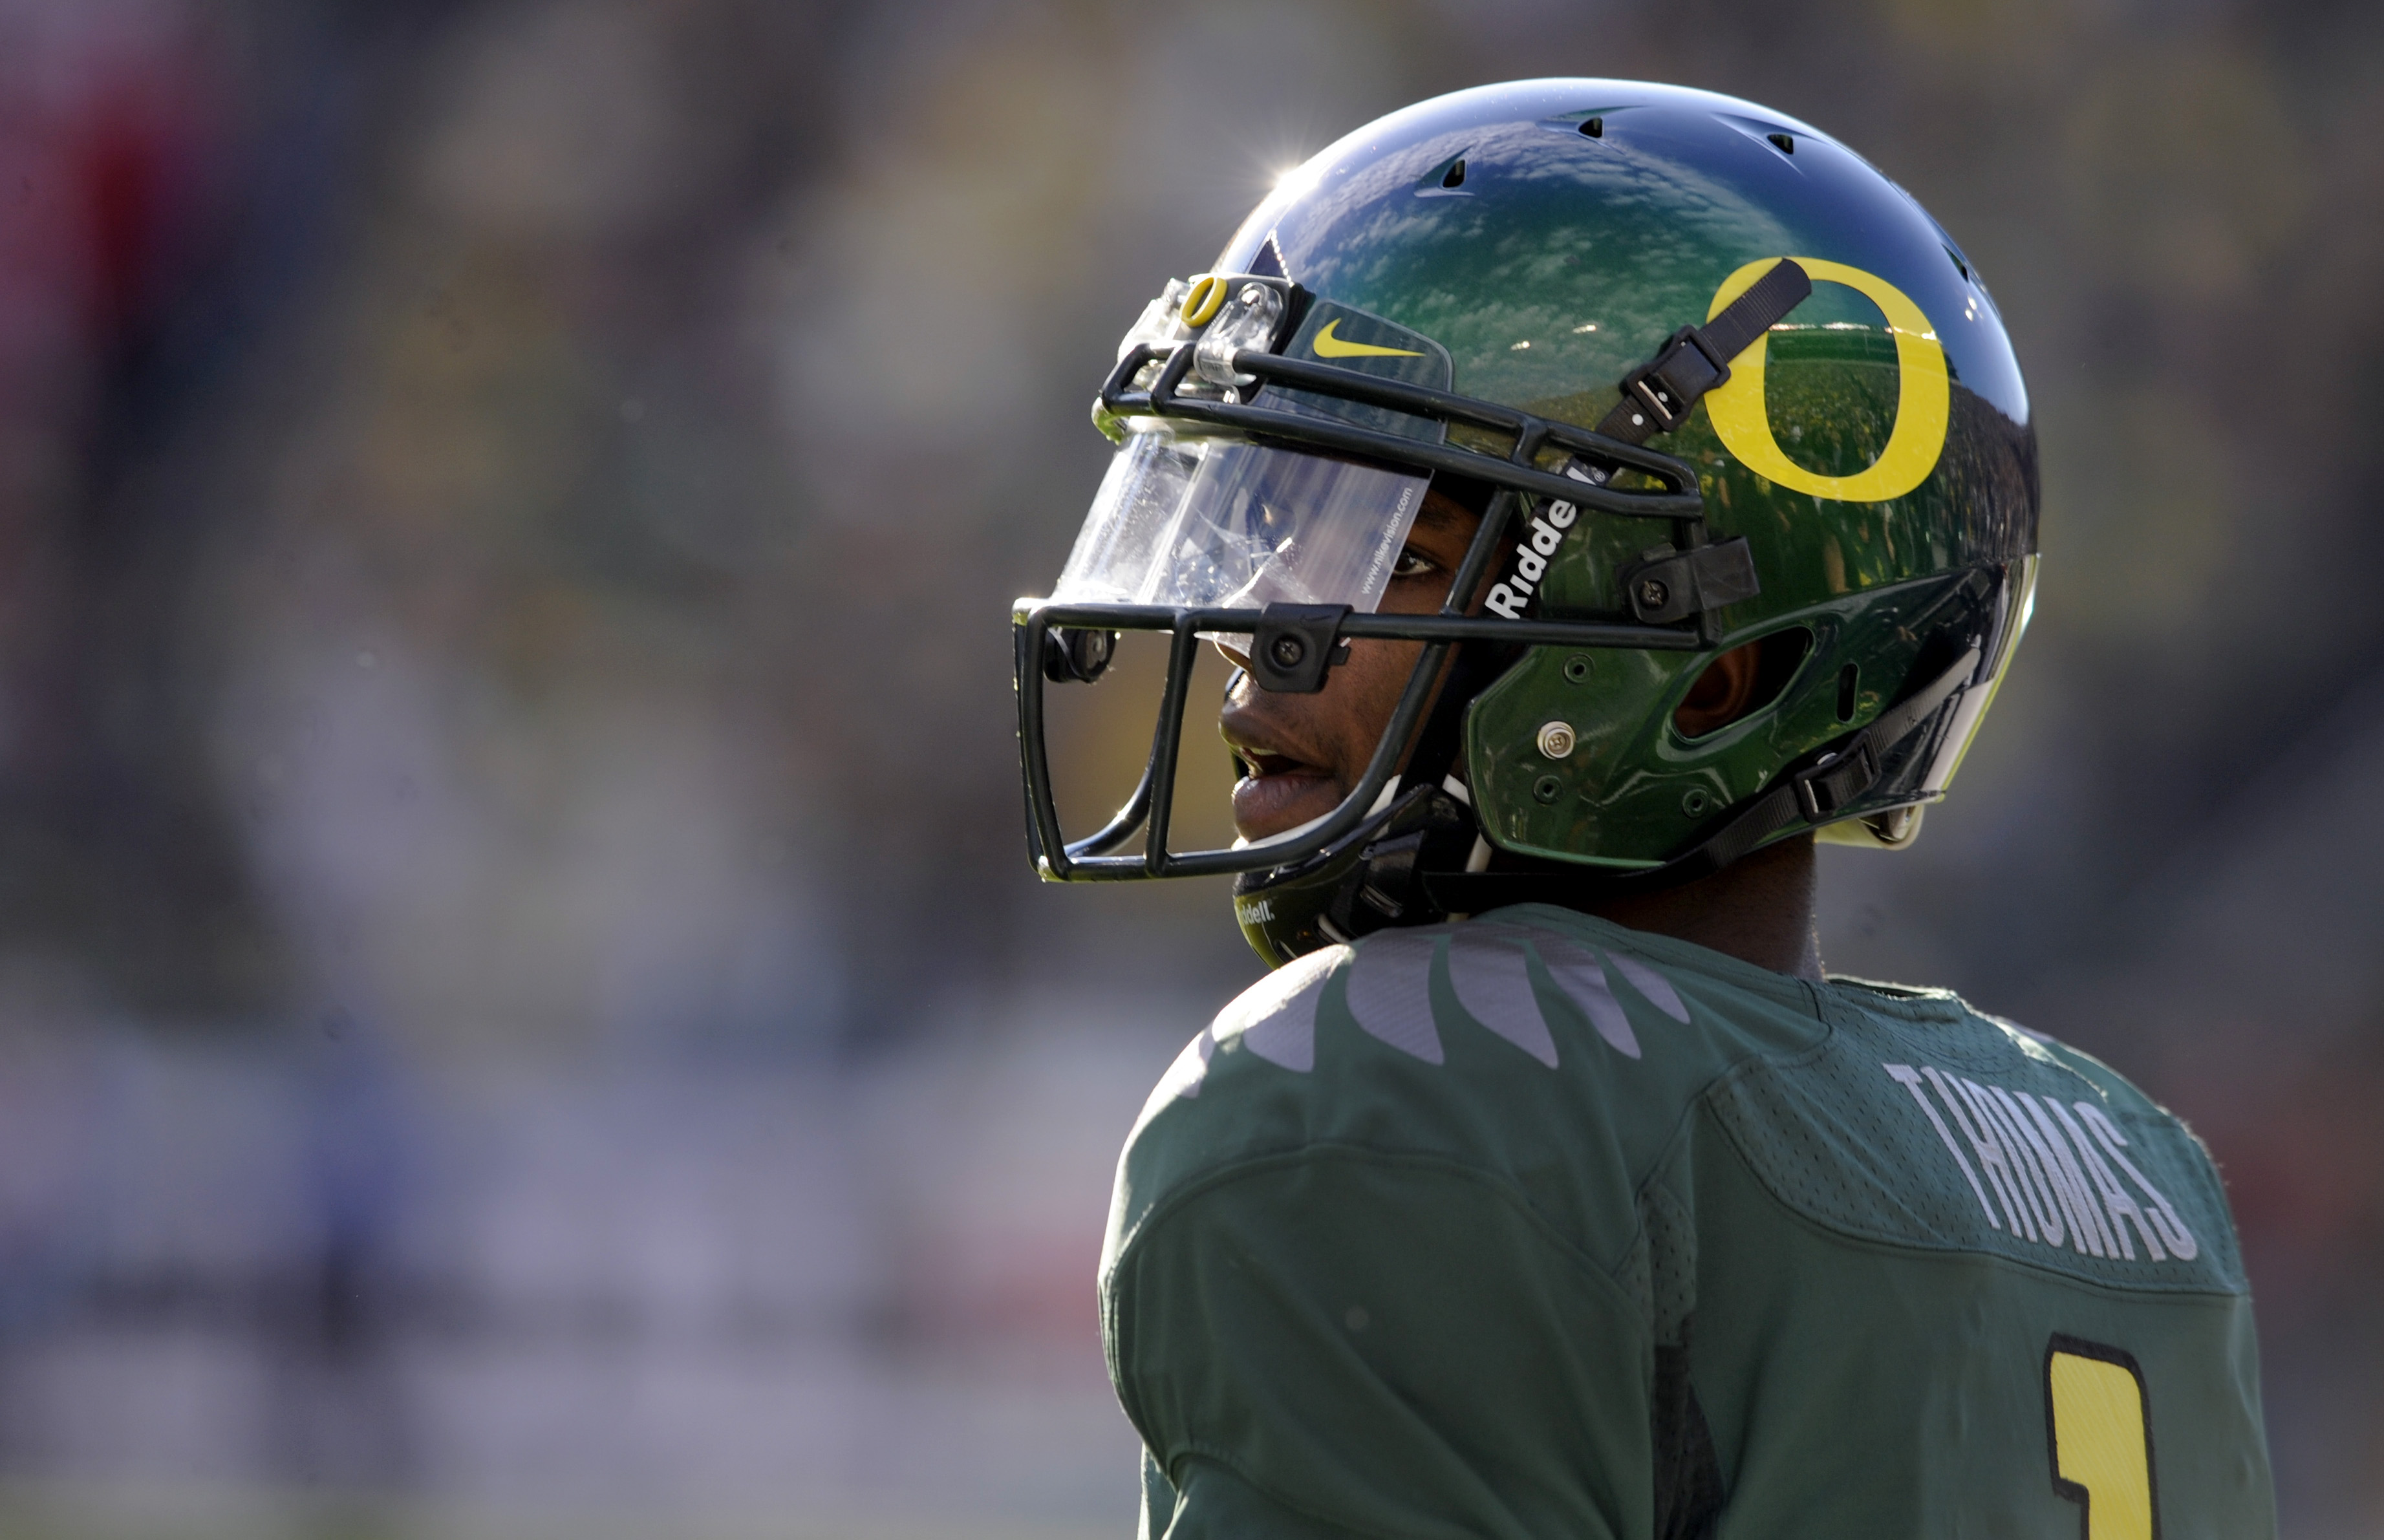 EUGENE, OR - OCTOBER 2: Quarterback Darron Thomas #1 of the Oregon Ducks looks out onto the field before the start of the game against the Stanford Cardinal at Autzen Stadium on October 2, 2010 in Eugene, Oregon. (Photo by Steve Dykes/Getty Images)